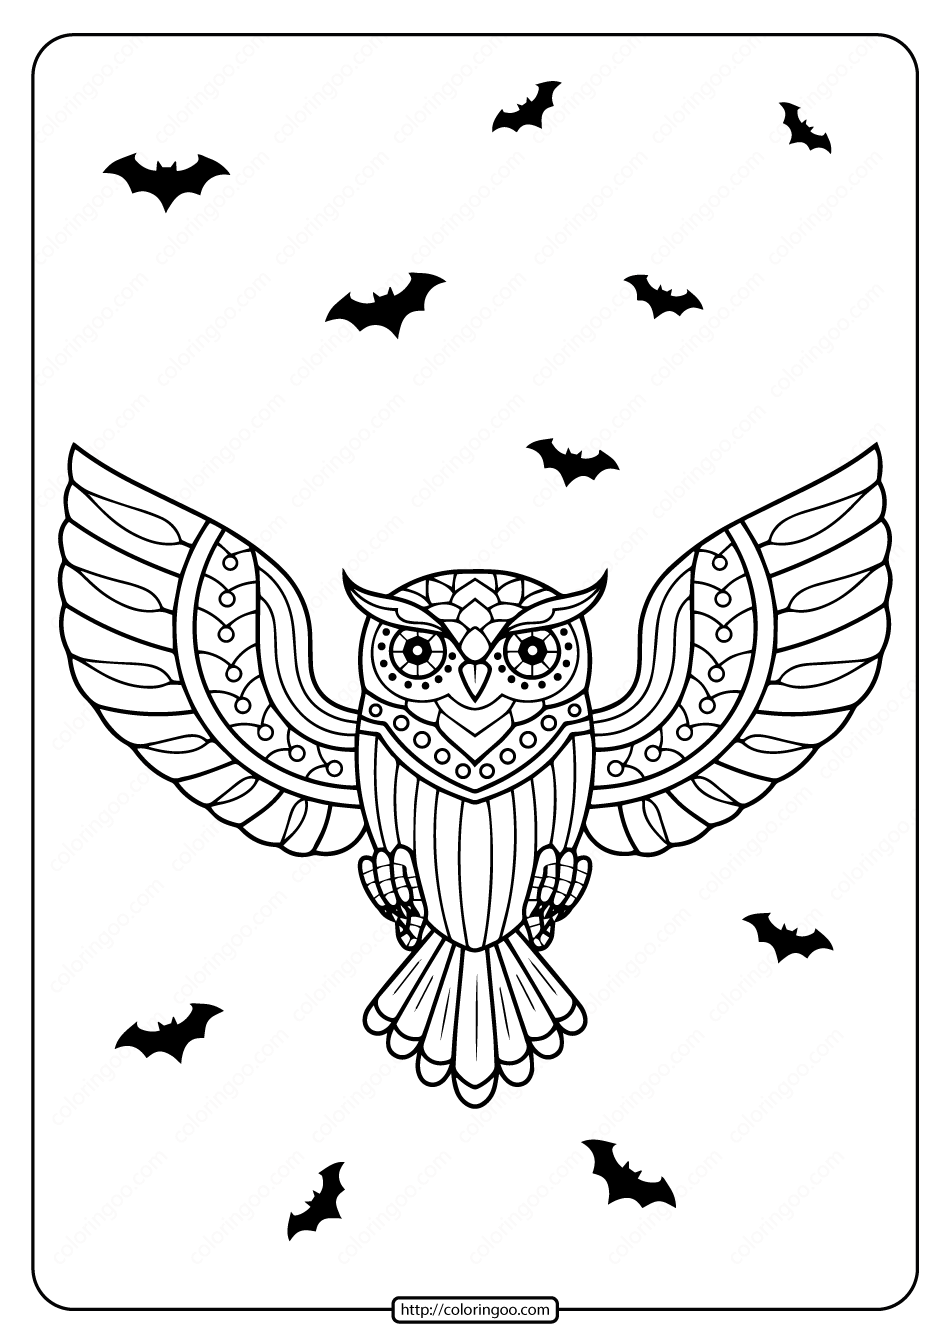 Printable Day of the Dead Owl Coloring Page